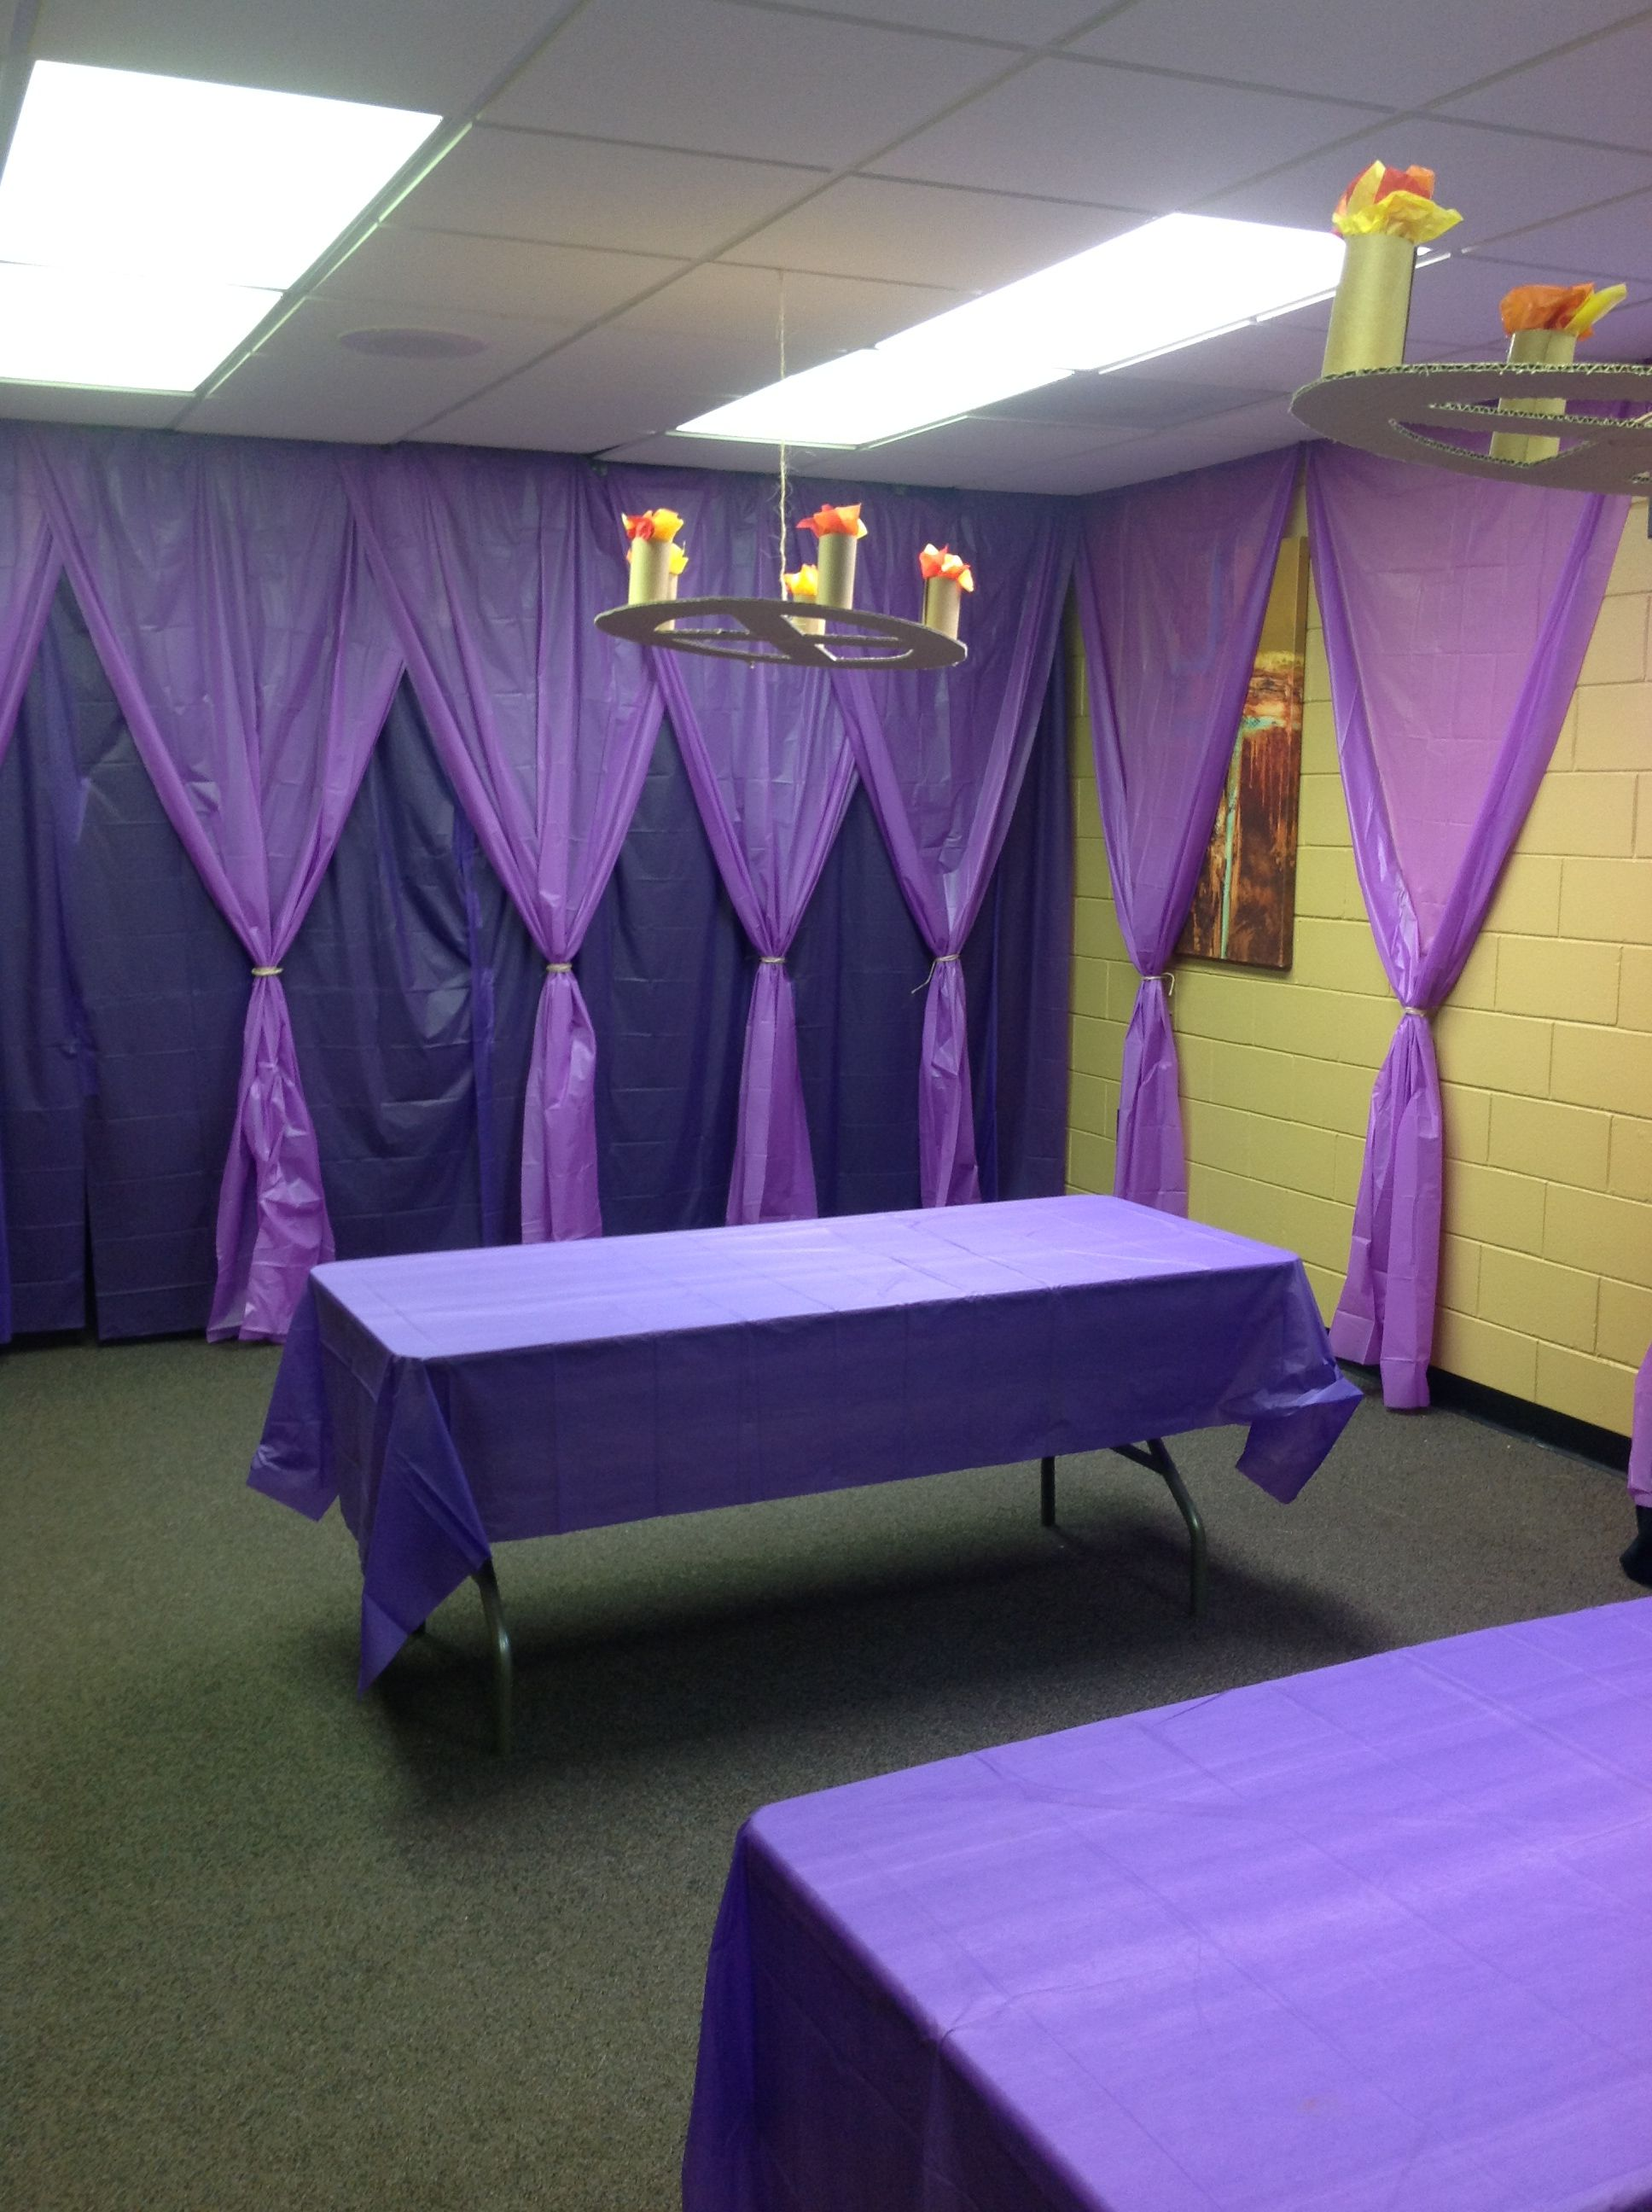 Halloween Chair Covers Dollar Tree Safari High Decorations Decorating Wall Space With Plastic Table Cloths Has A